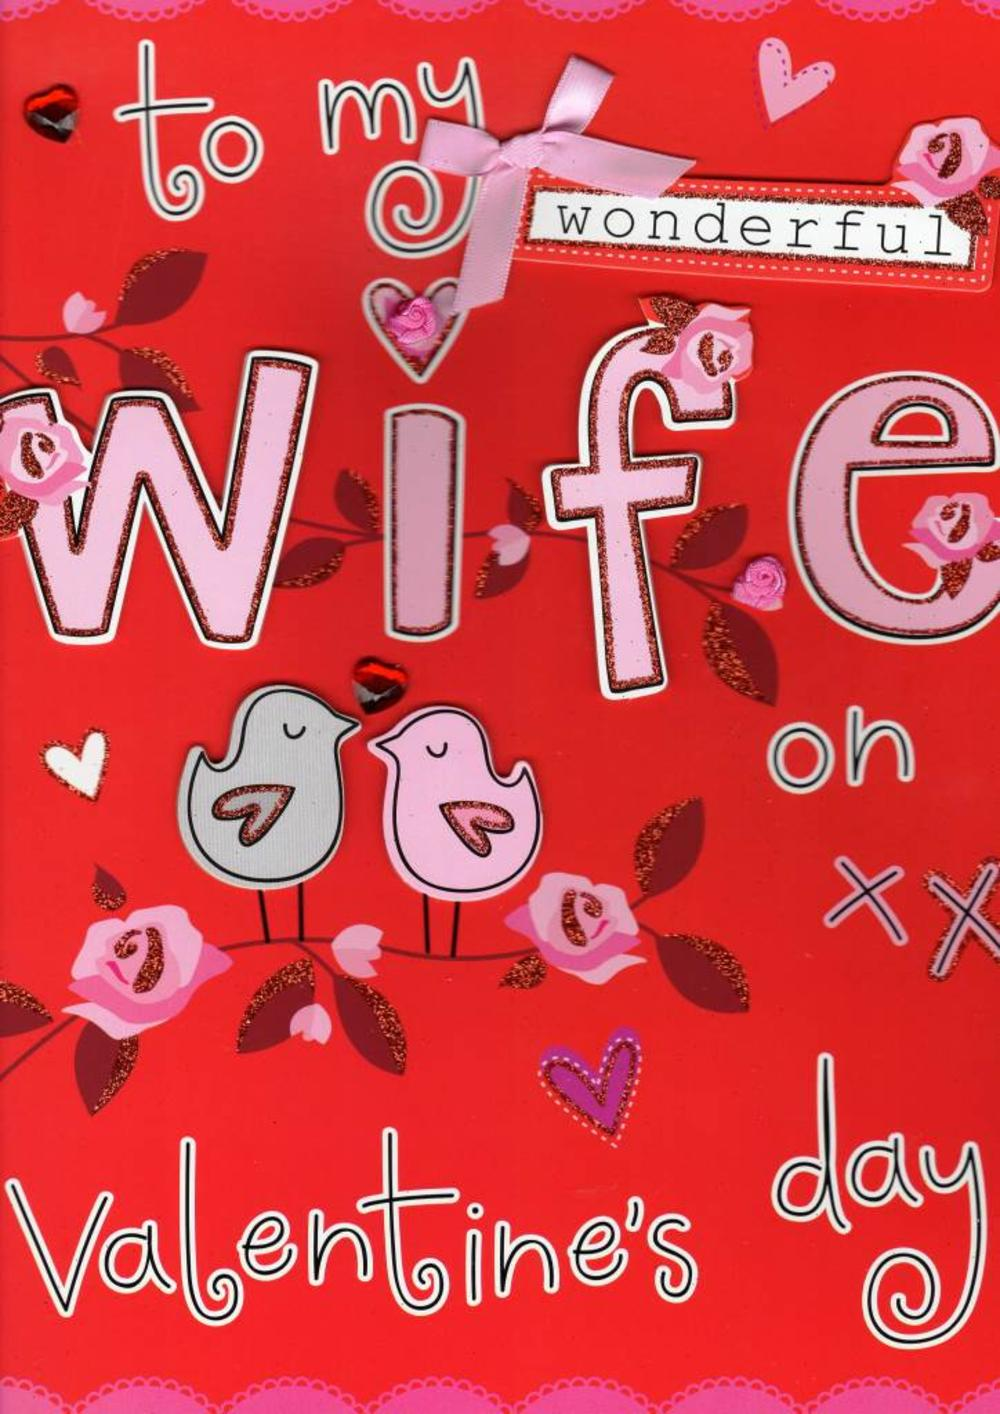 Large to my wonderful wife valentines day card cards love kates large to my wonderful wife valentines day card m4hsunfo